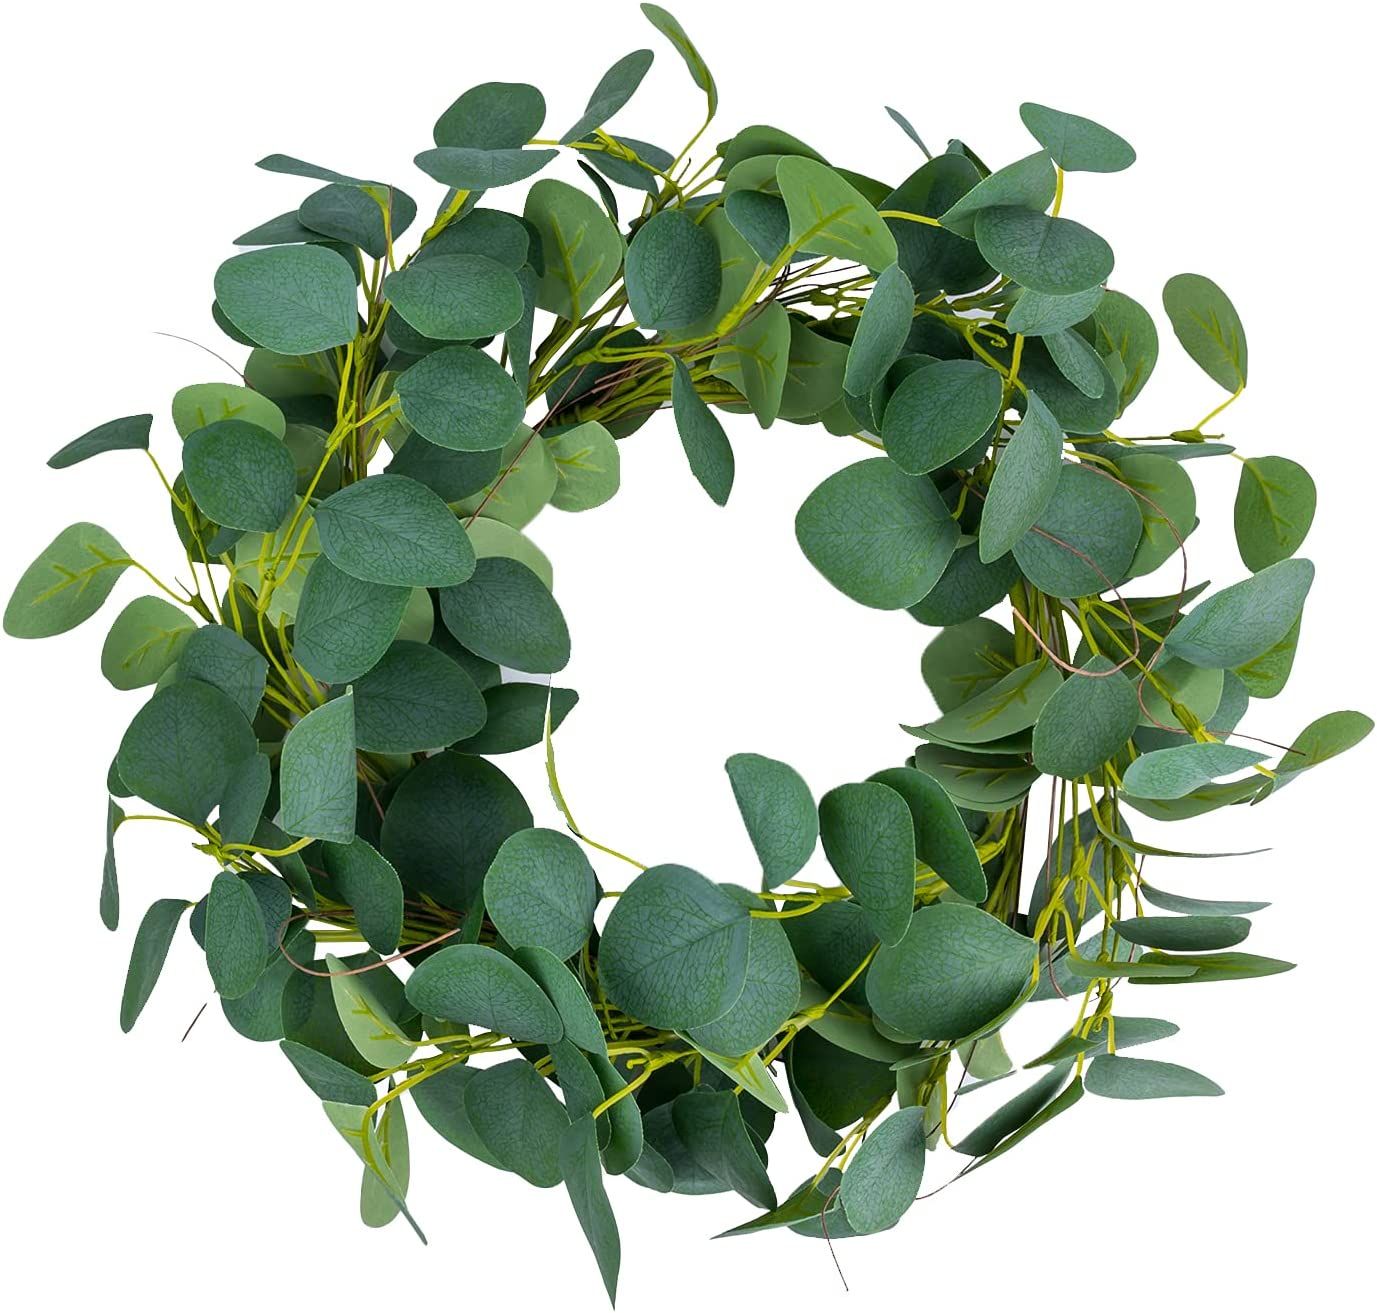 Foeyyir Eucalyptus Wreaths for Front Door 12 Inch Artificial Green Leaf Wreath for Spring Summer and All Seasons Indoor Outdoor Wall Decor for Festival Celebration